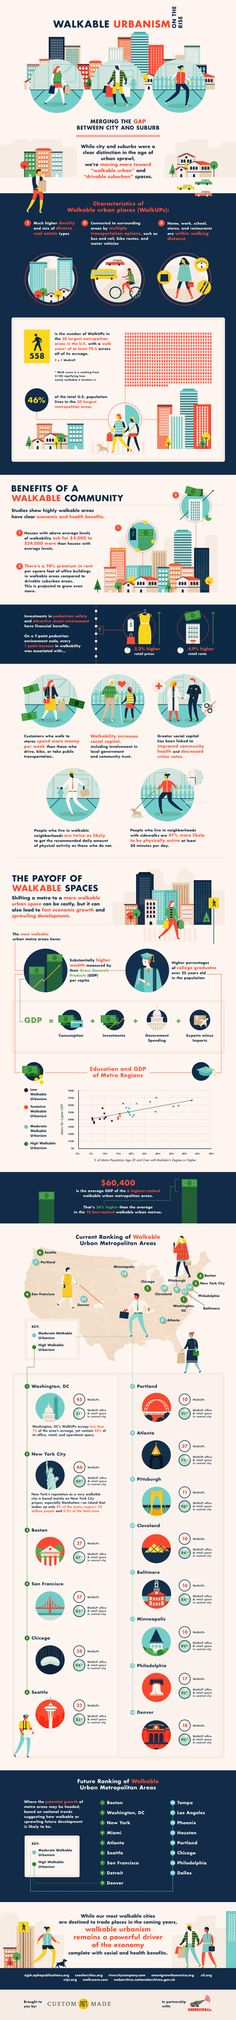 CREATE WALKABLE COMMUNITIES: Walkable Urbanism on the Rise Infographic